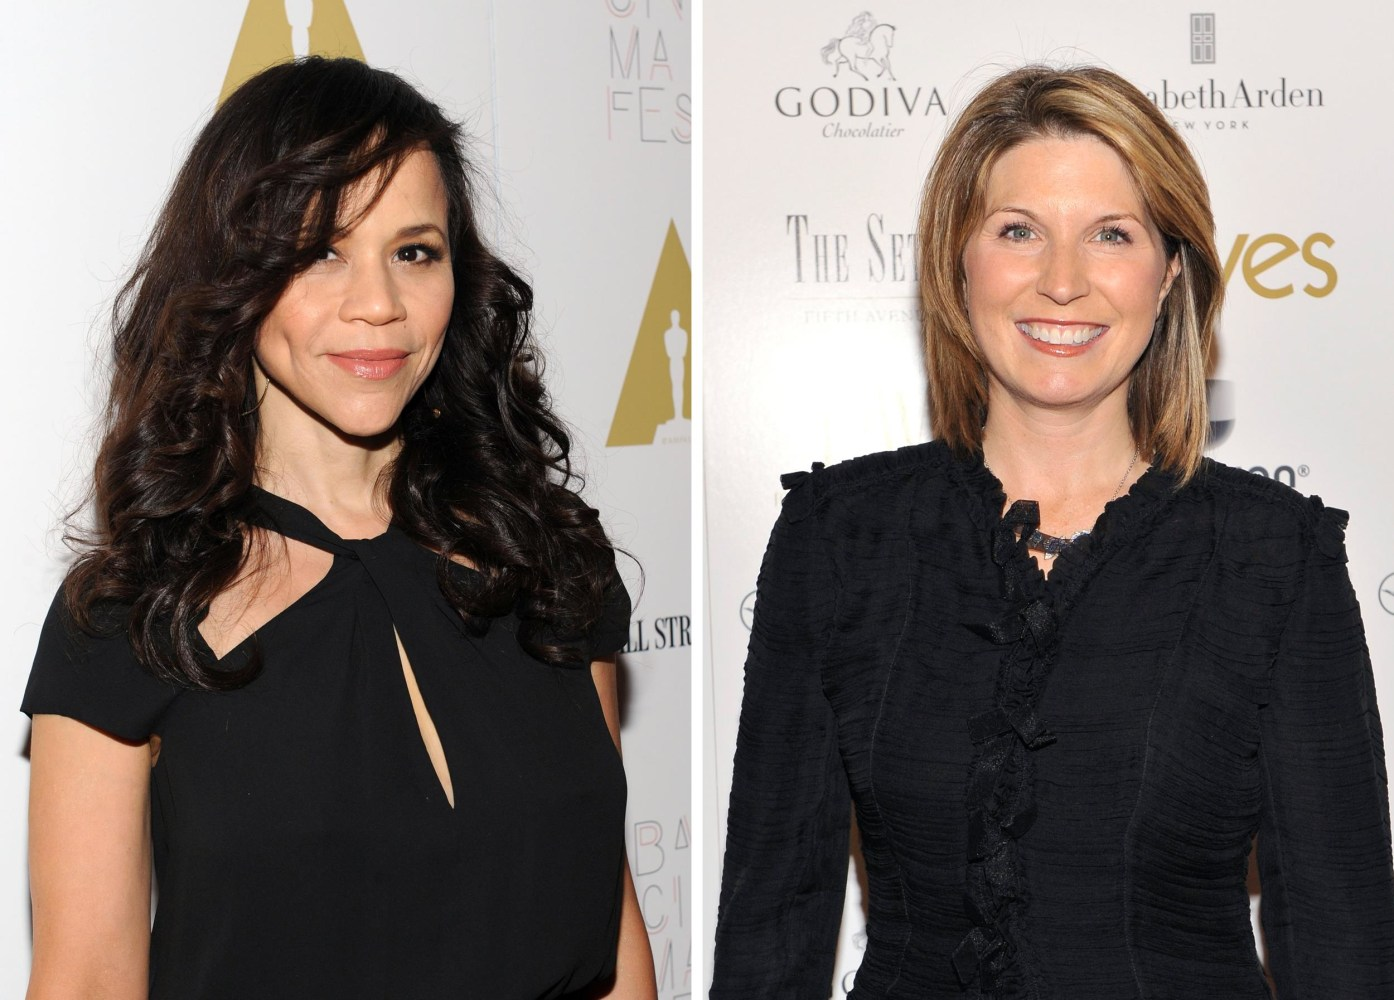 Rosie perez nicolle wallace to join the view as new co hosts nbc